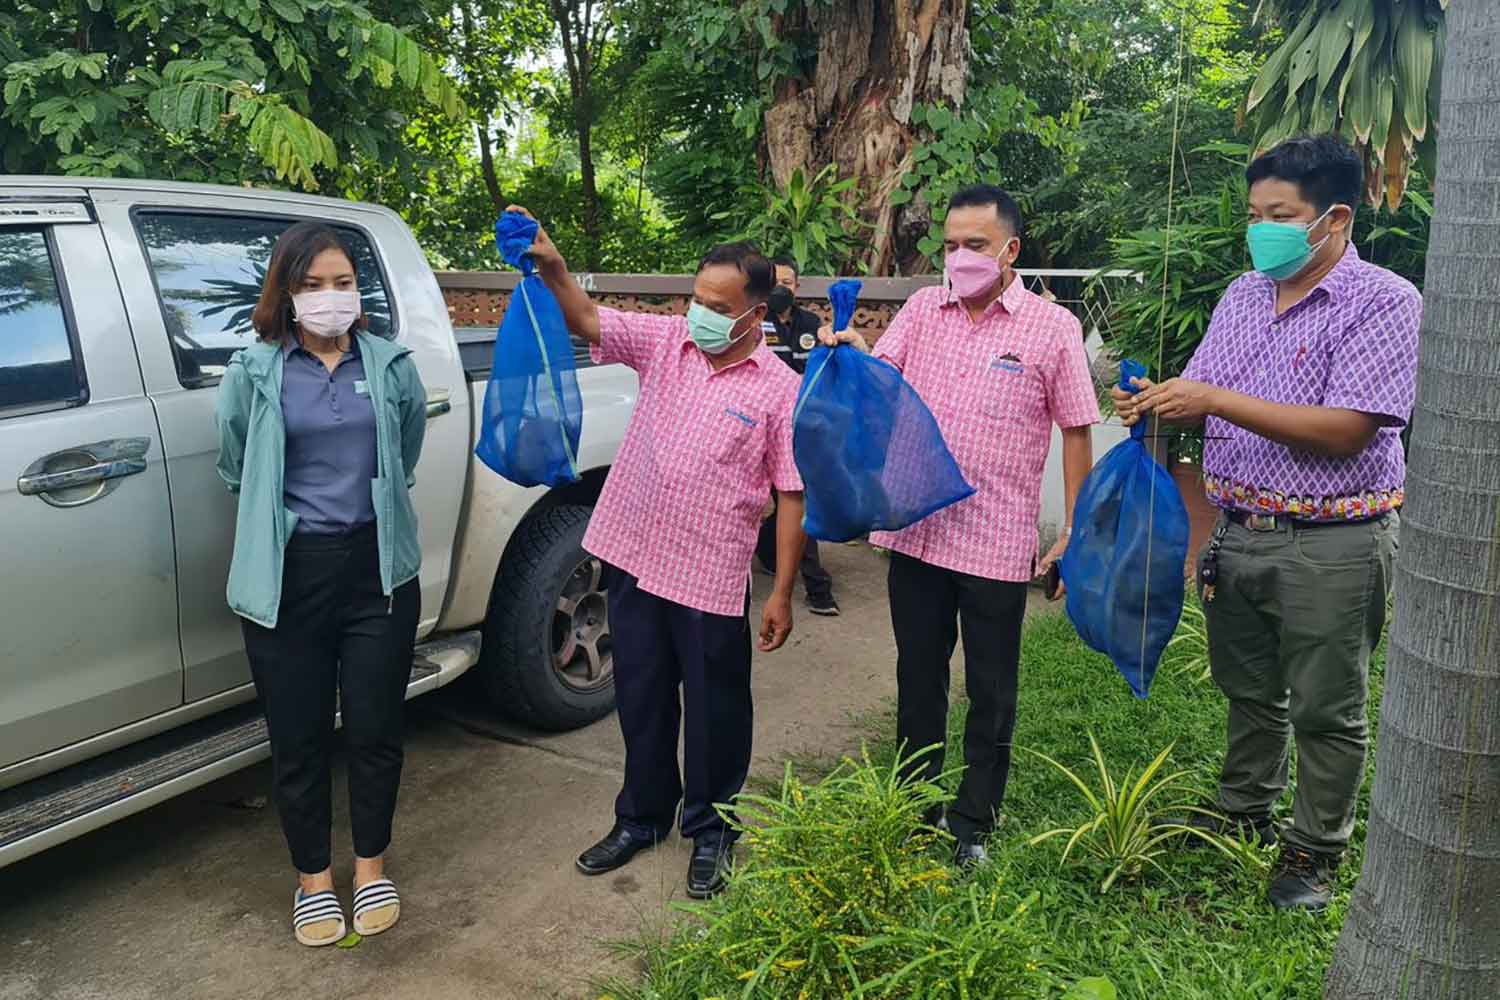 Department of National Parks, Wildlife and Plant Conservation Department officials with some the six macaques seized from the house of a wildlife trader in Pathum Thani's Lam Luk Ka district on Wednesday. (Photo: Chalit Poomruang)